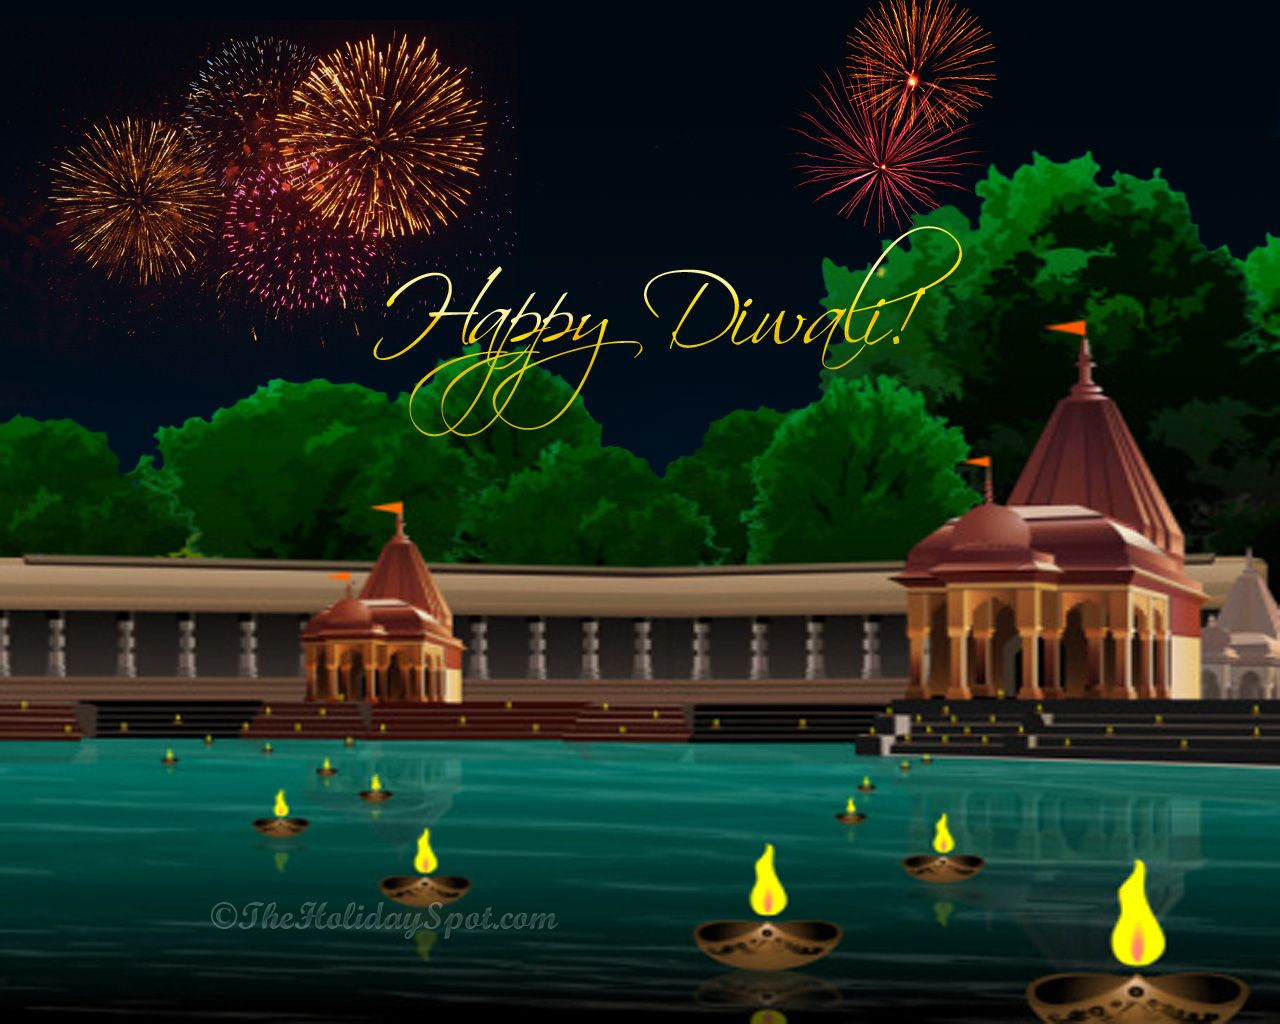 Diwali Crackers Magic Touch Android Apps on Google Play